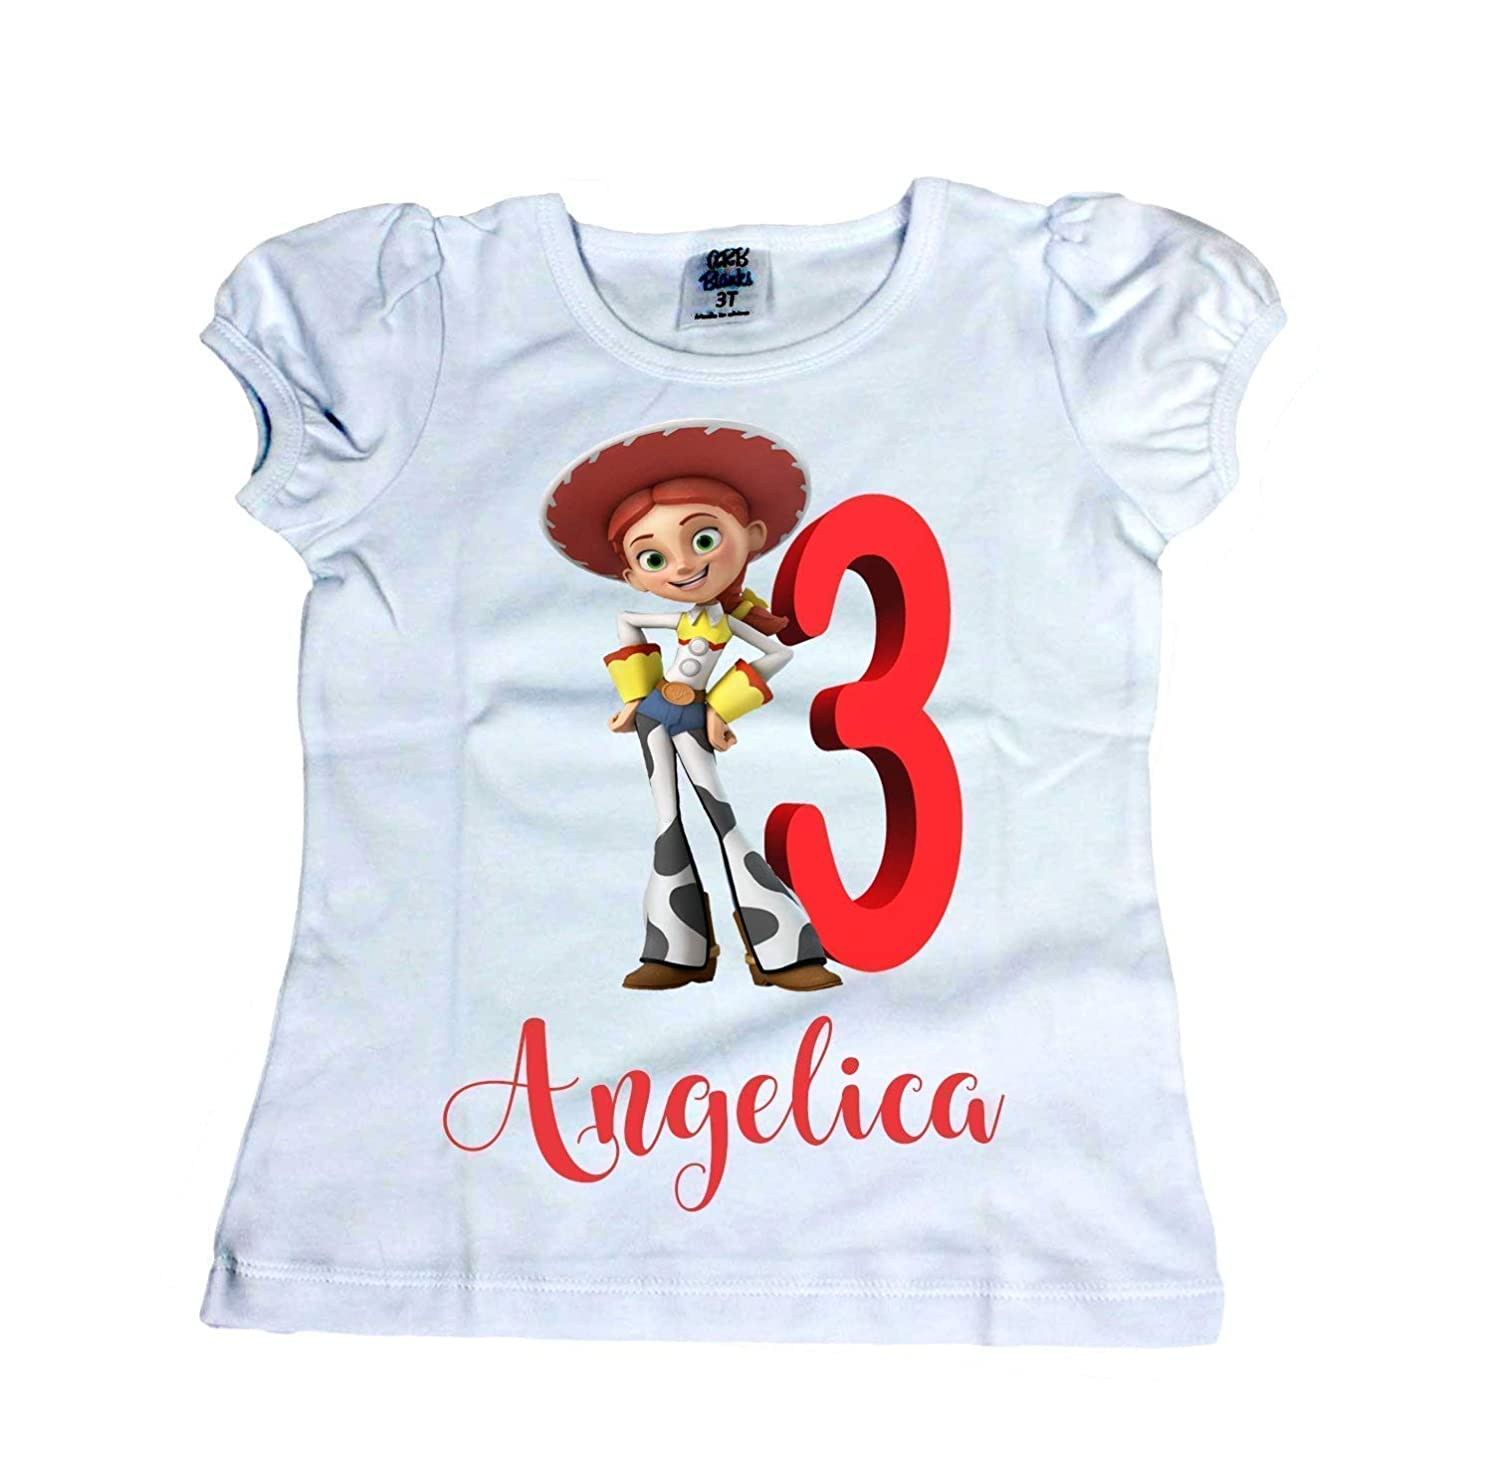 Girl Jessie from Toy Story shirt Girl Toy Story shirt Girl Disney Jessie birthday shirt